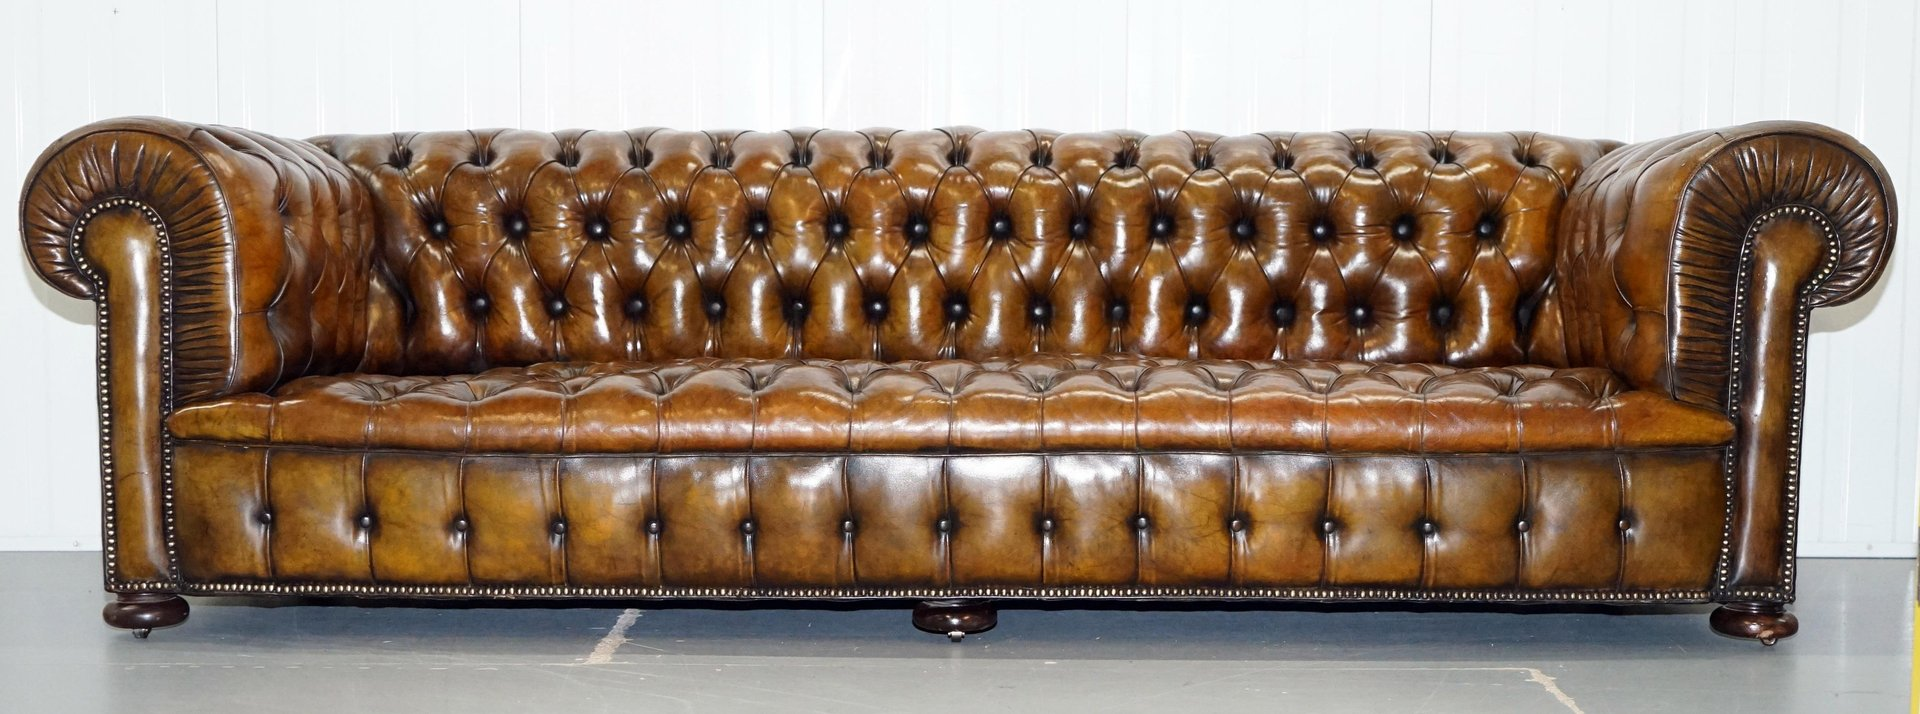 Antique Victorian Brown Leather Chesterfield Sofa